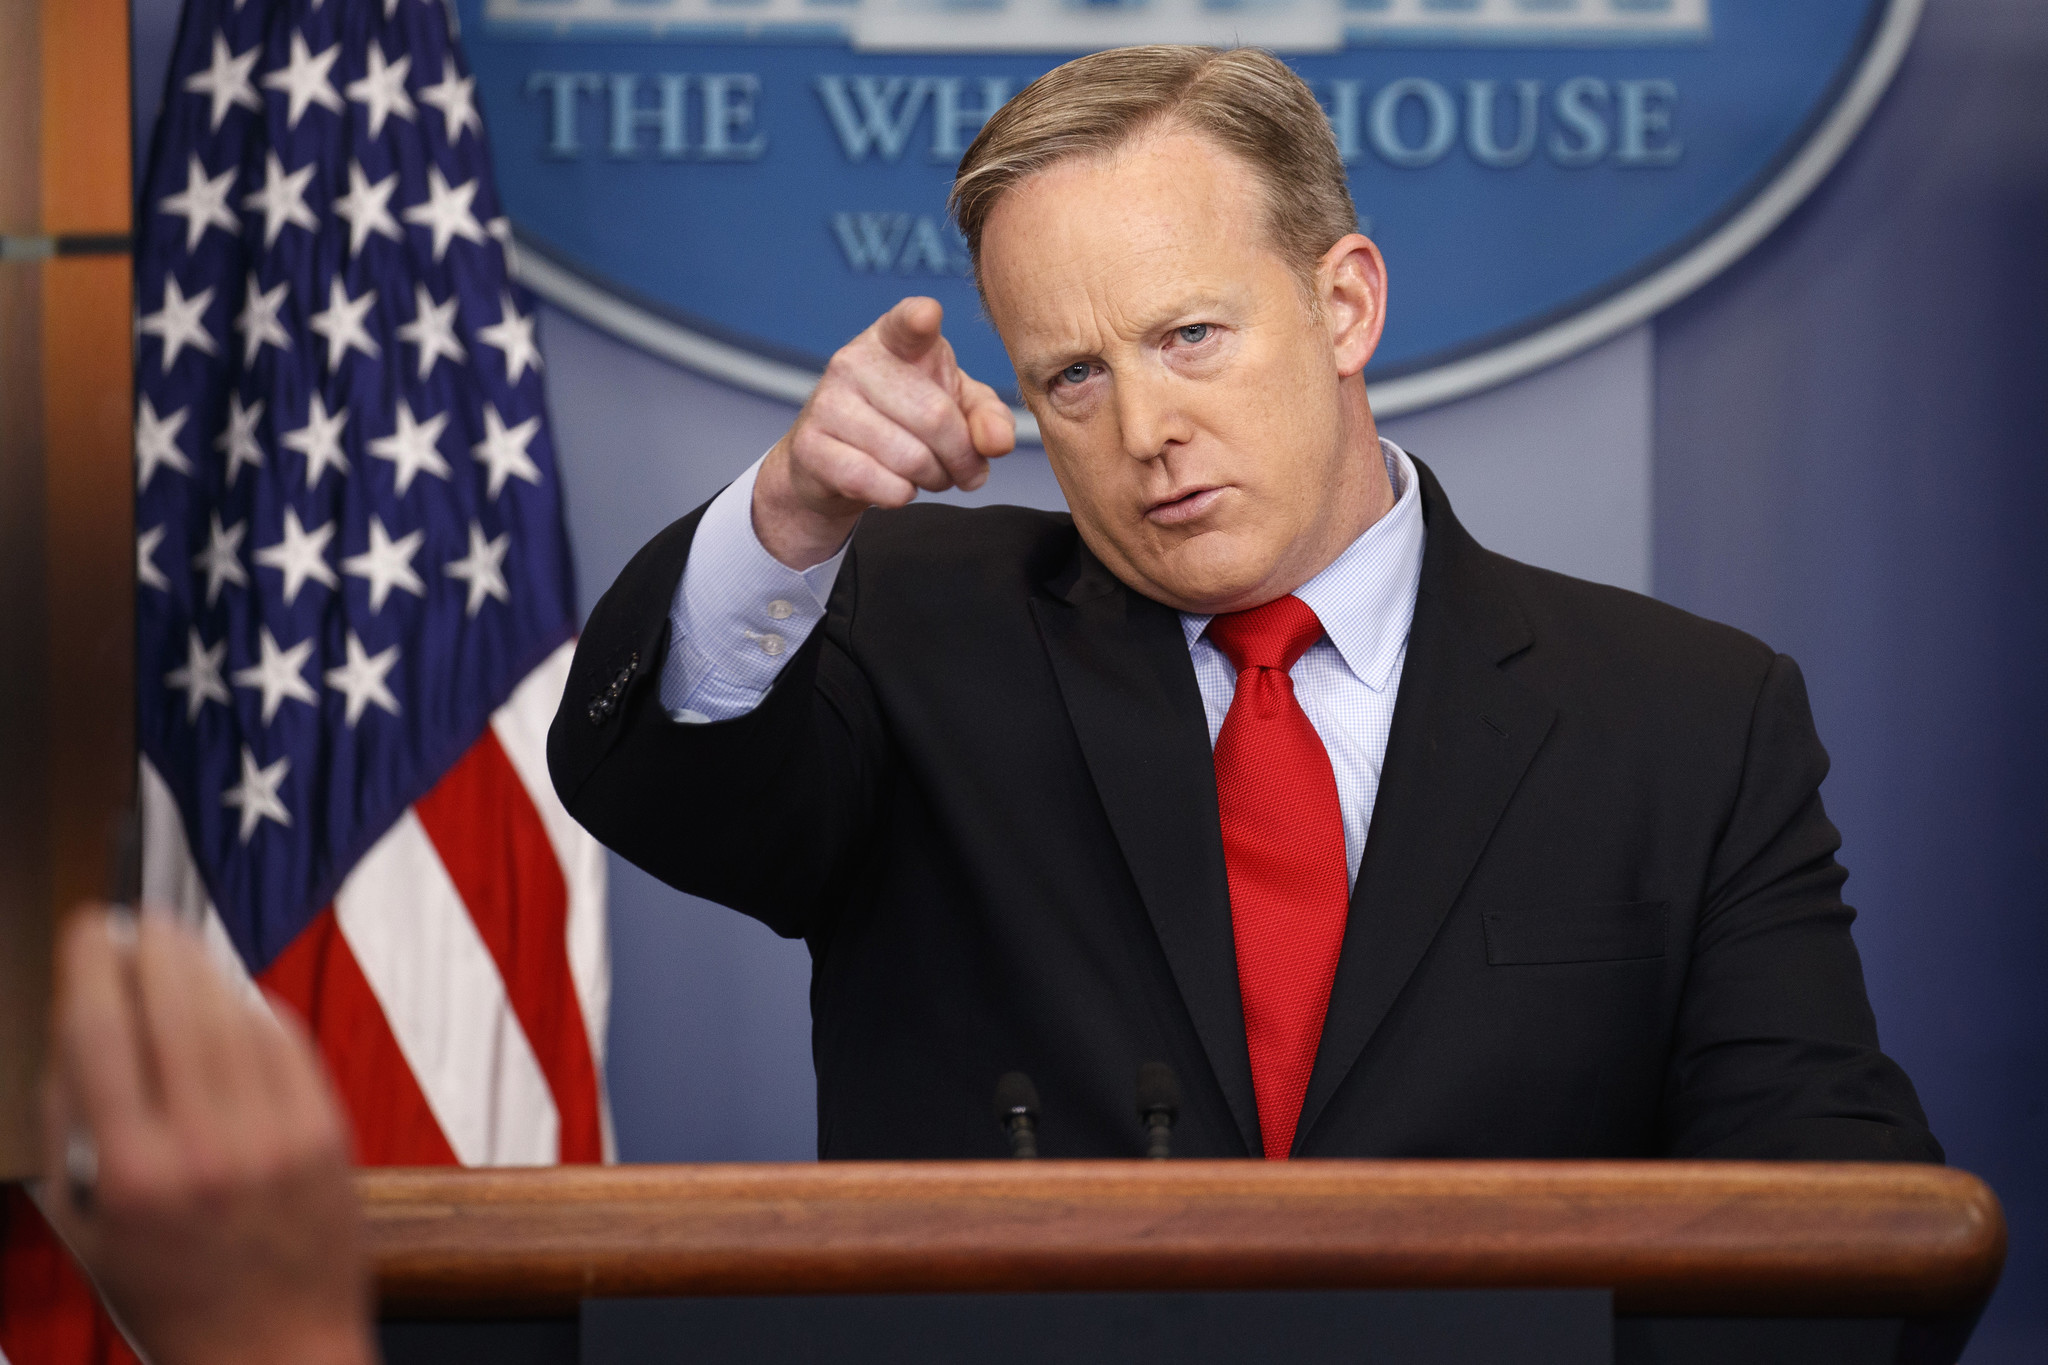 unemployment rate articles photos and videos los angeles times spicer broke a federal rule when he hailed jobs report too soon after its release